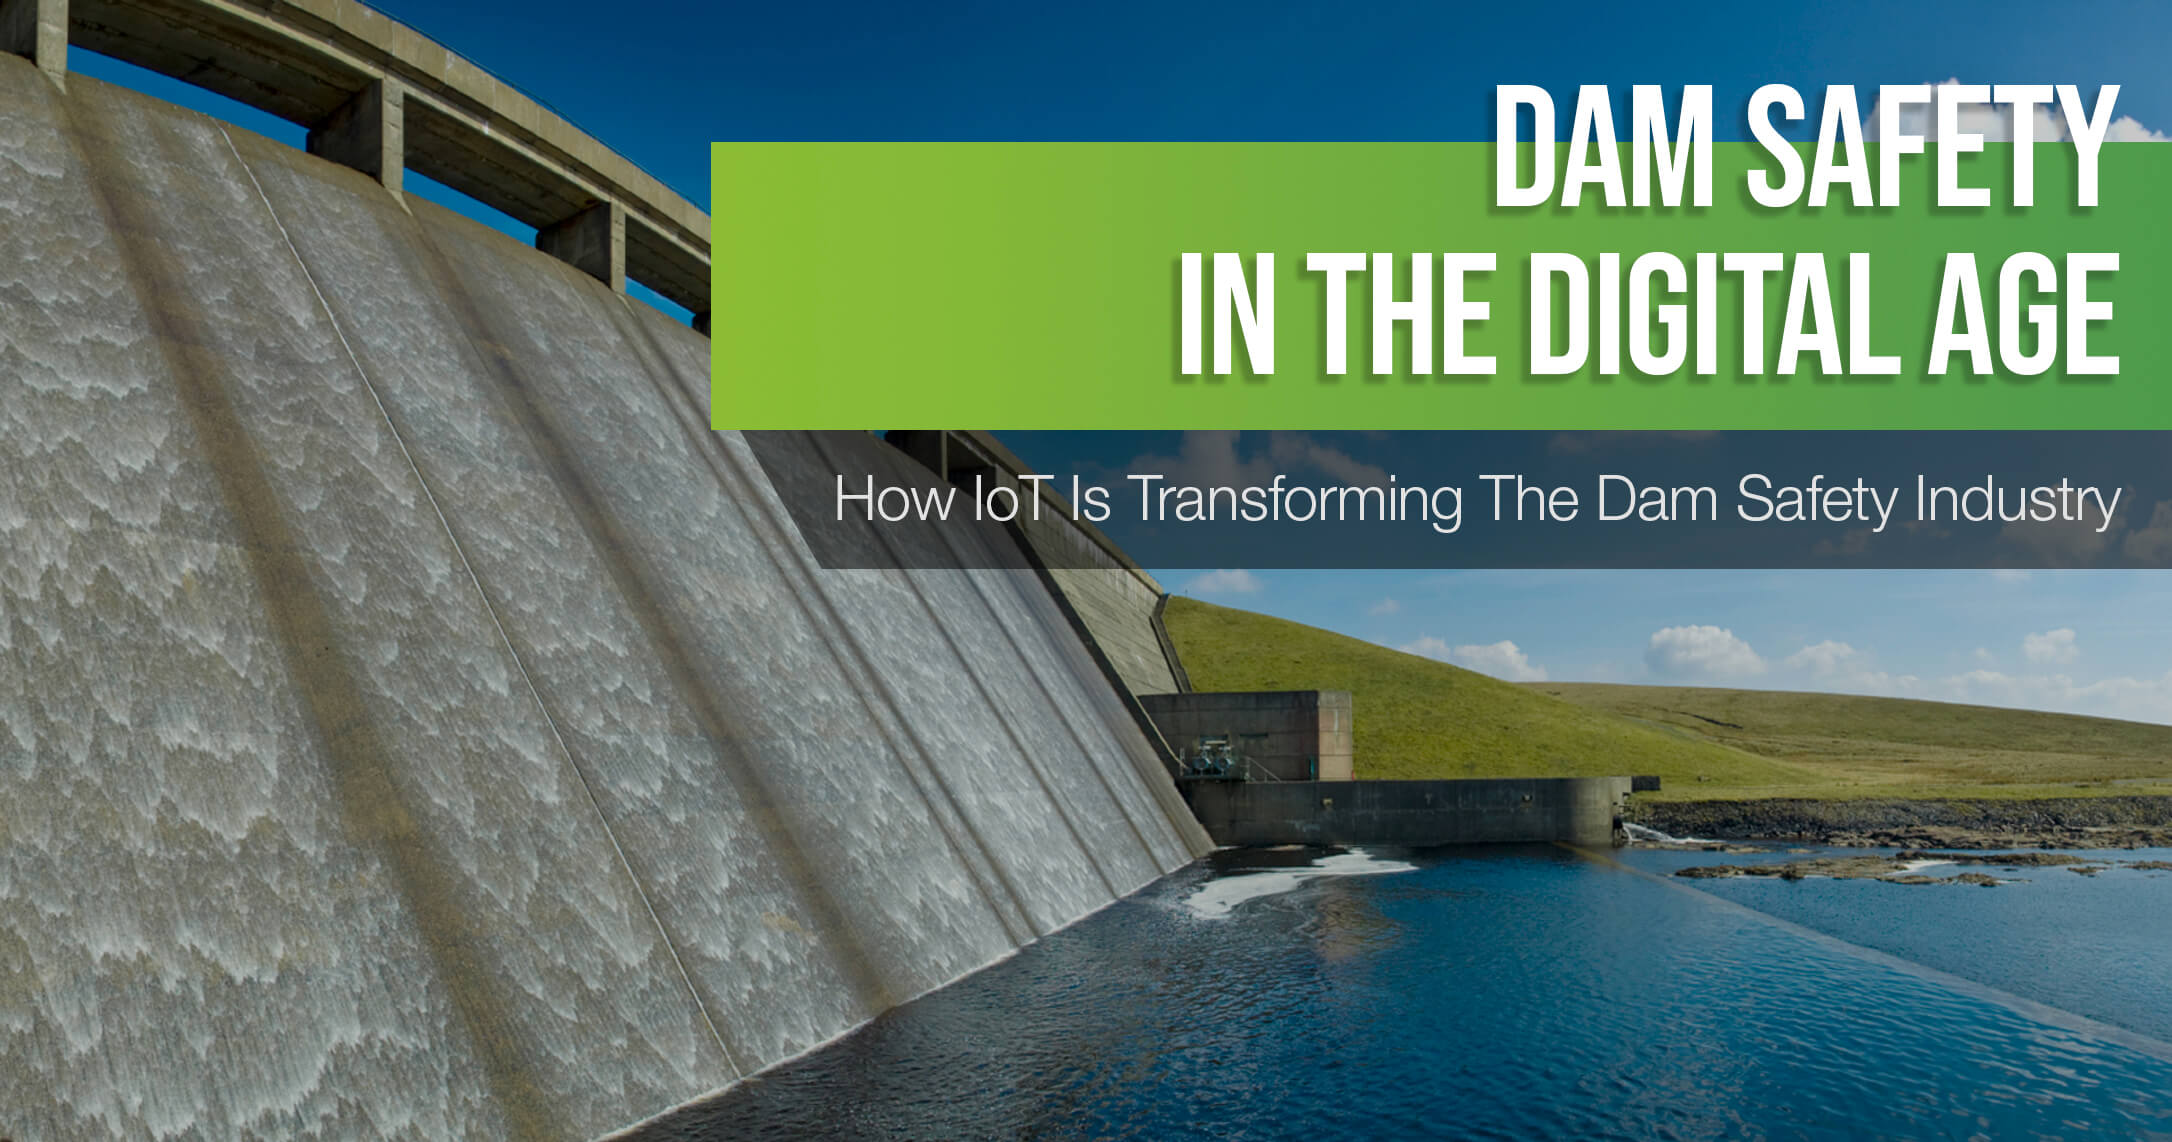 Dam Safety in the Digital Age: How IoT is Transforming Dam Safety